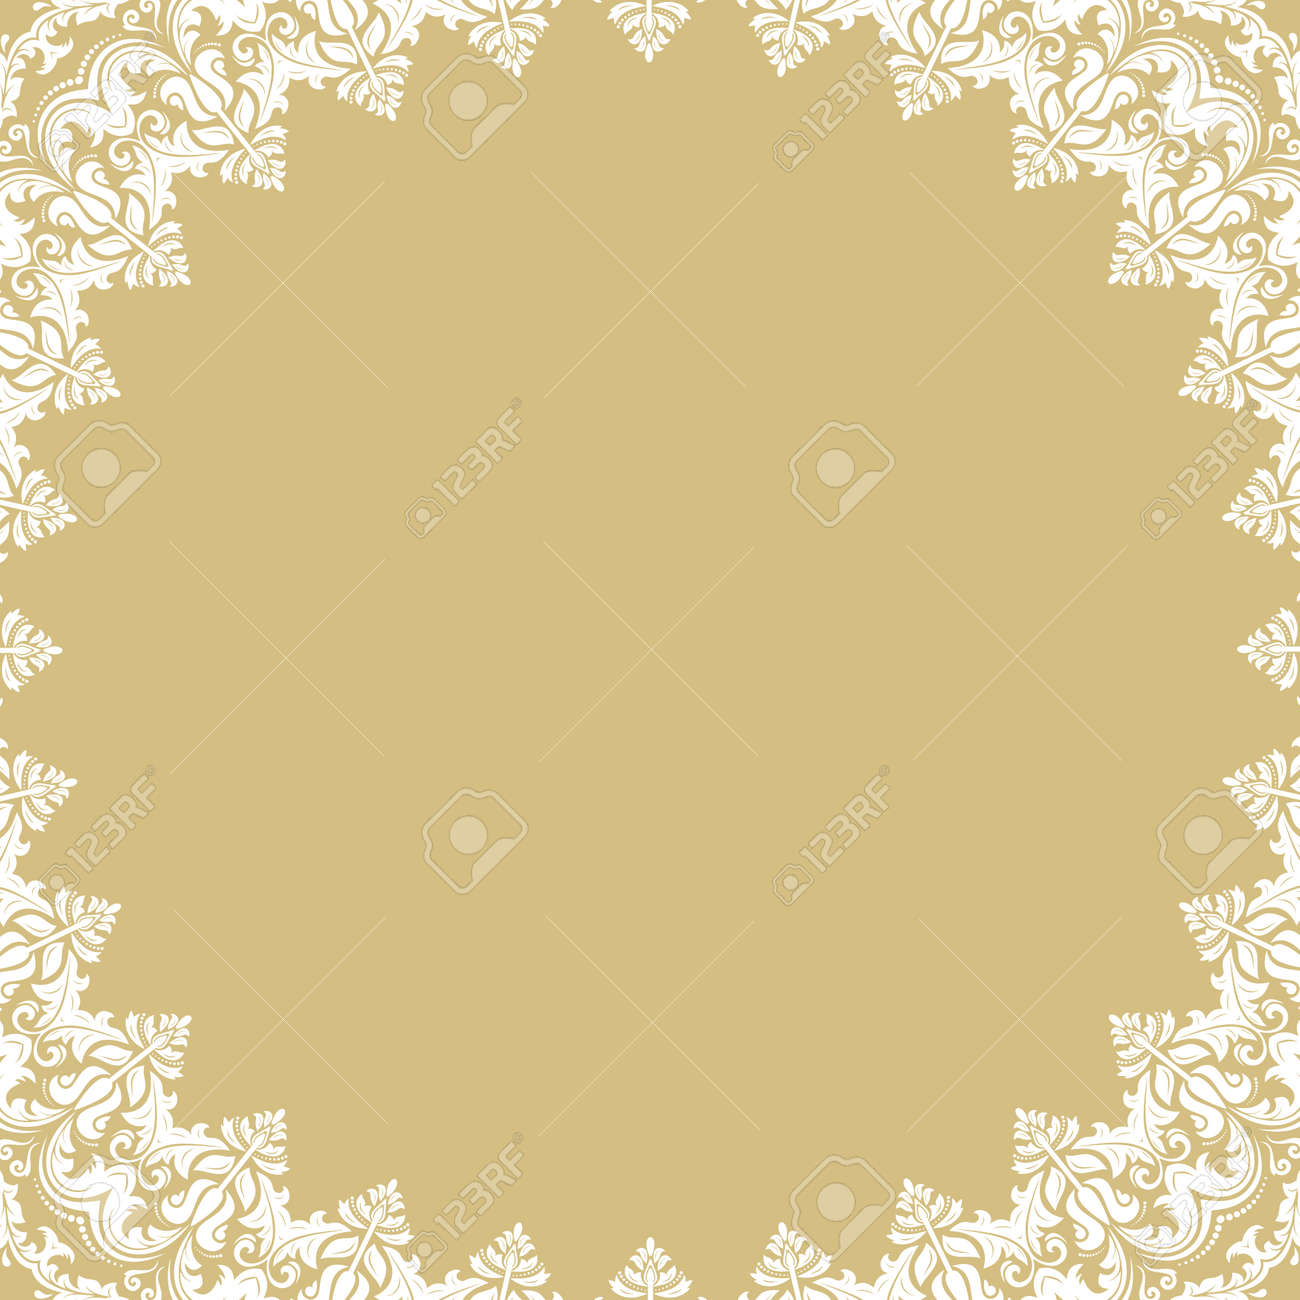 Oriental round frame with arabesques and floral elements. Floral white border with vintage pattern. Greeting card with place for text - 169559490